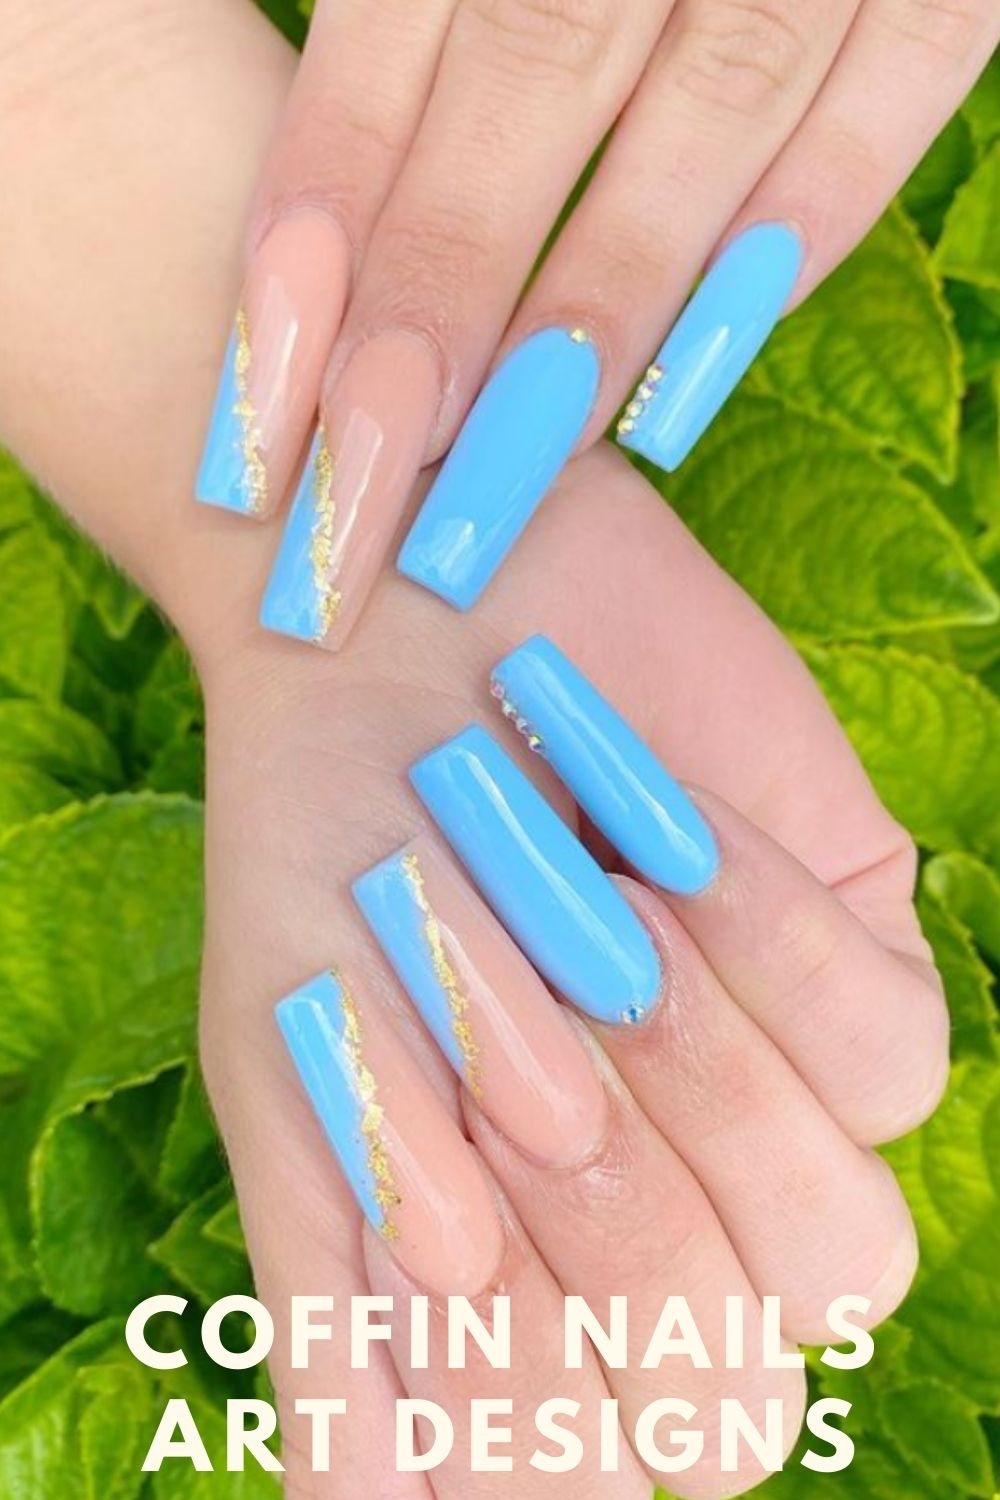 Gold and light blue coffin nails art designs